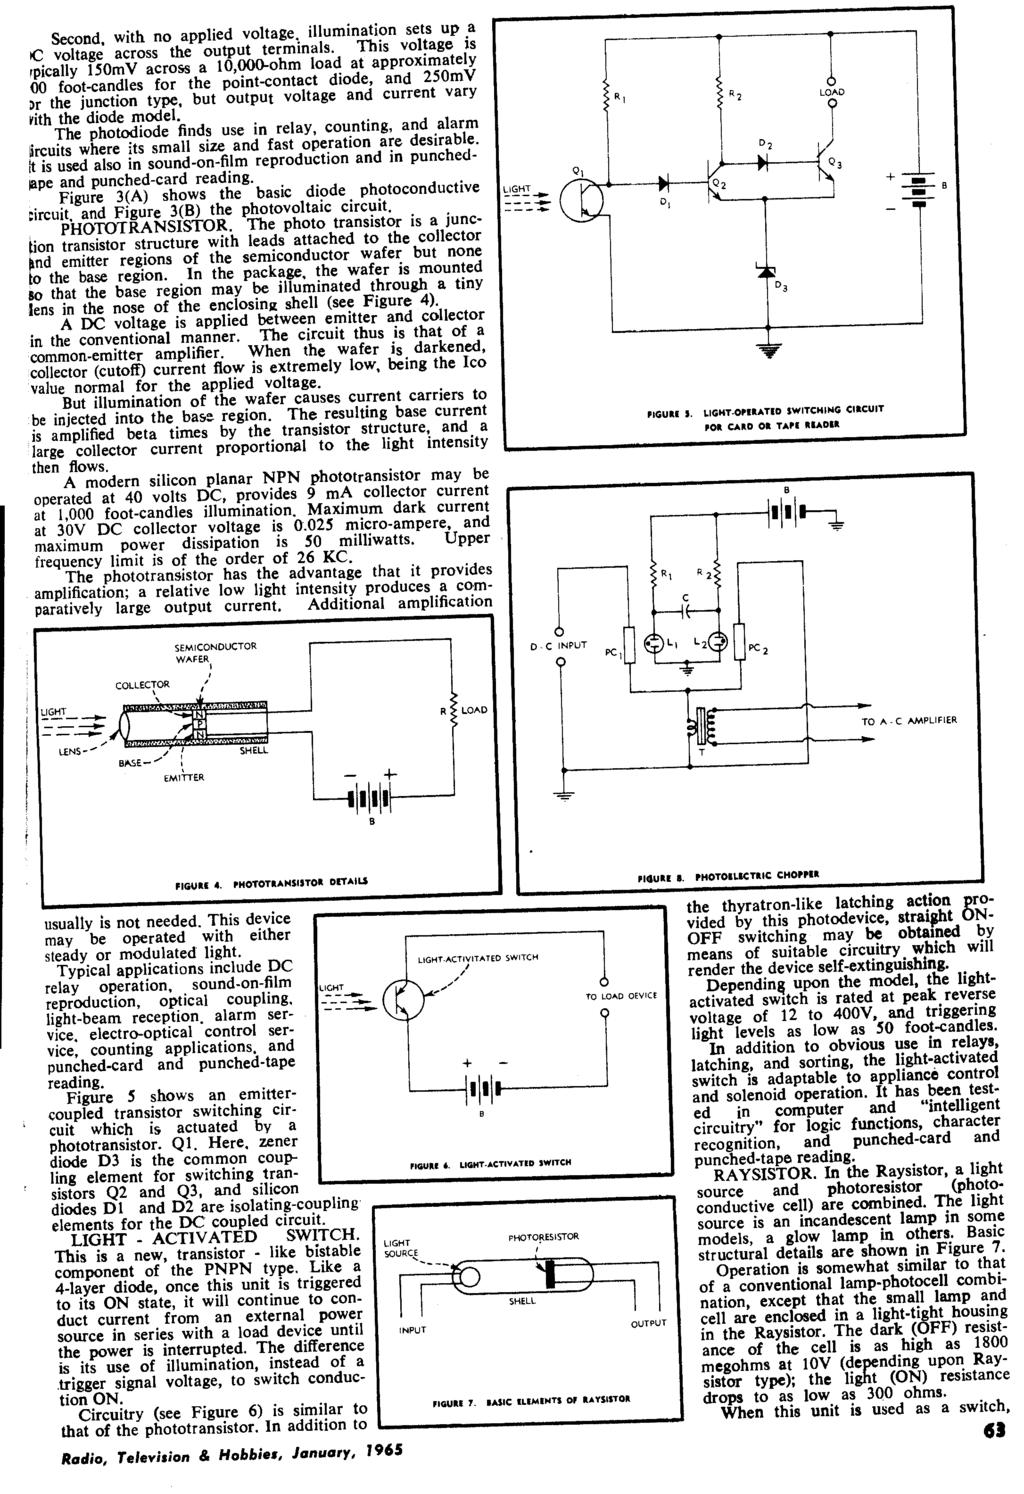 January 1965 Radio 26 Vol No 10 Television Com Buy Ac90 1000v Induction Type Ac Circuit Detector Voltage Second With Applied Illumination Sets Up A Ic Across The Output